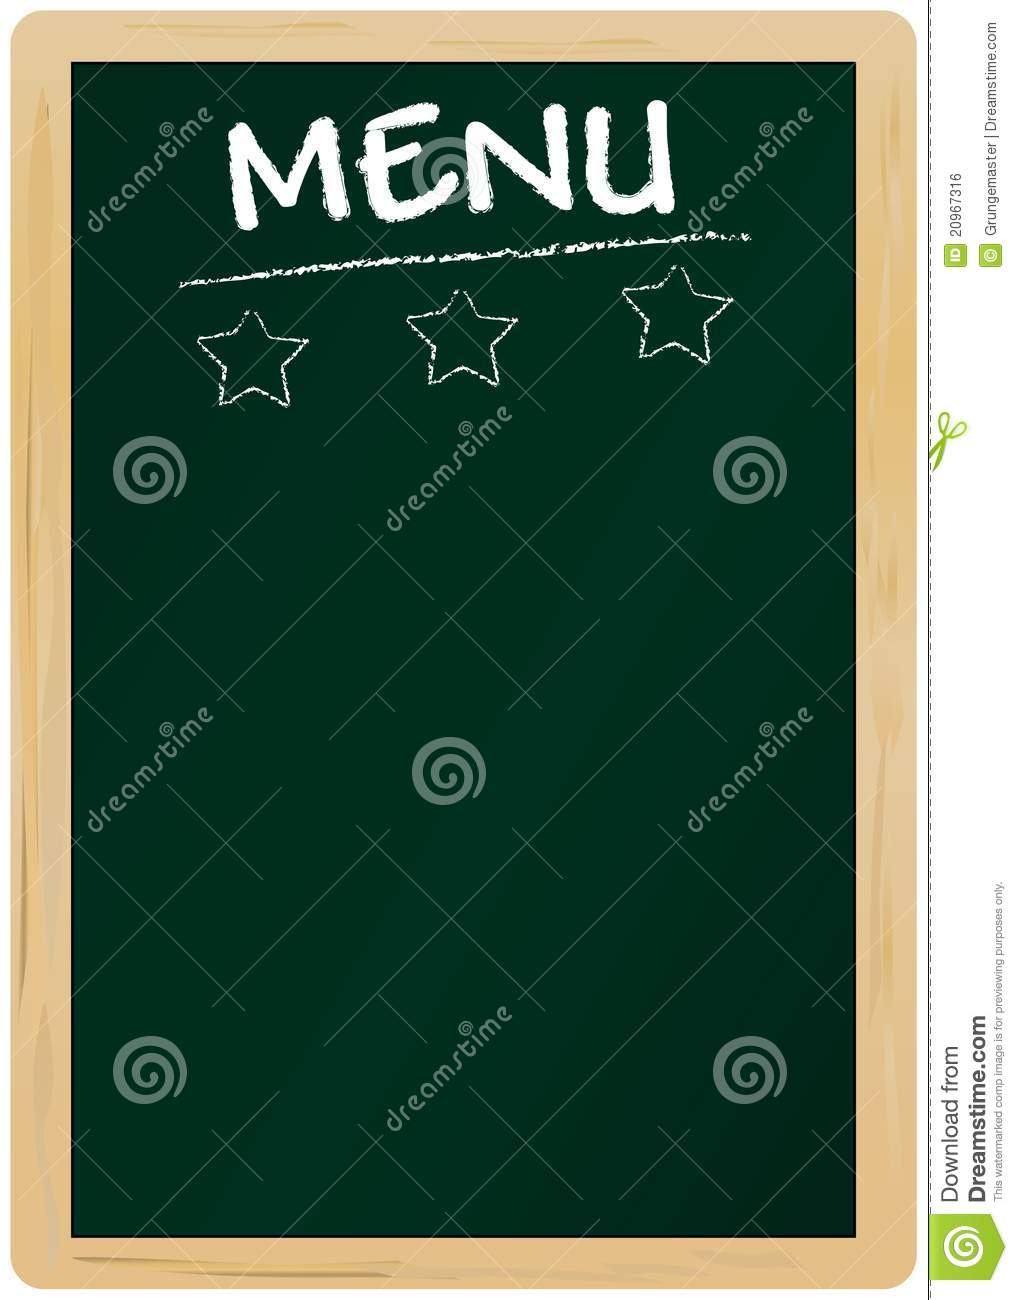 Blank menu card stock vector. Illustration of price ...